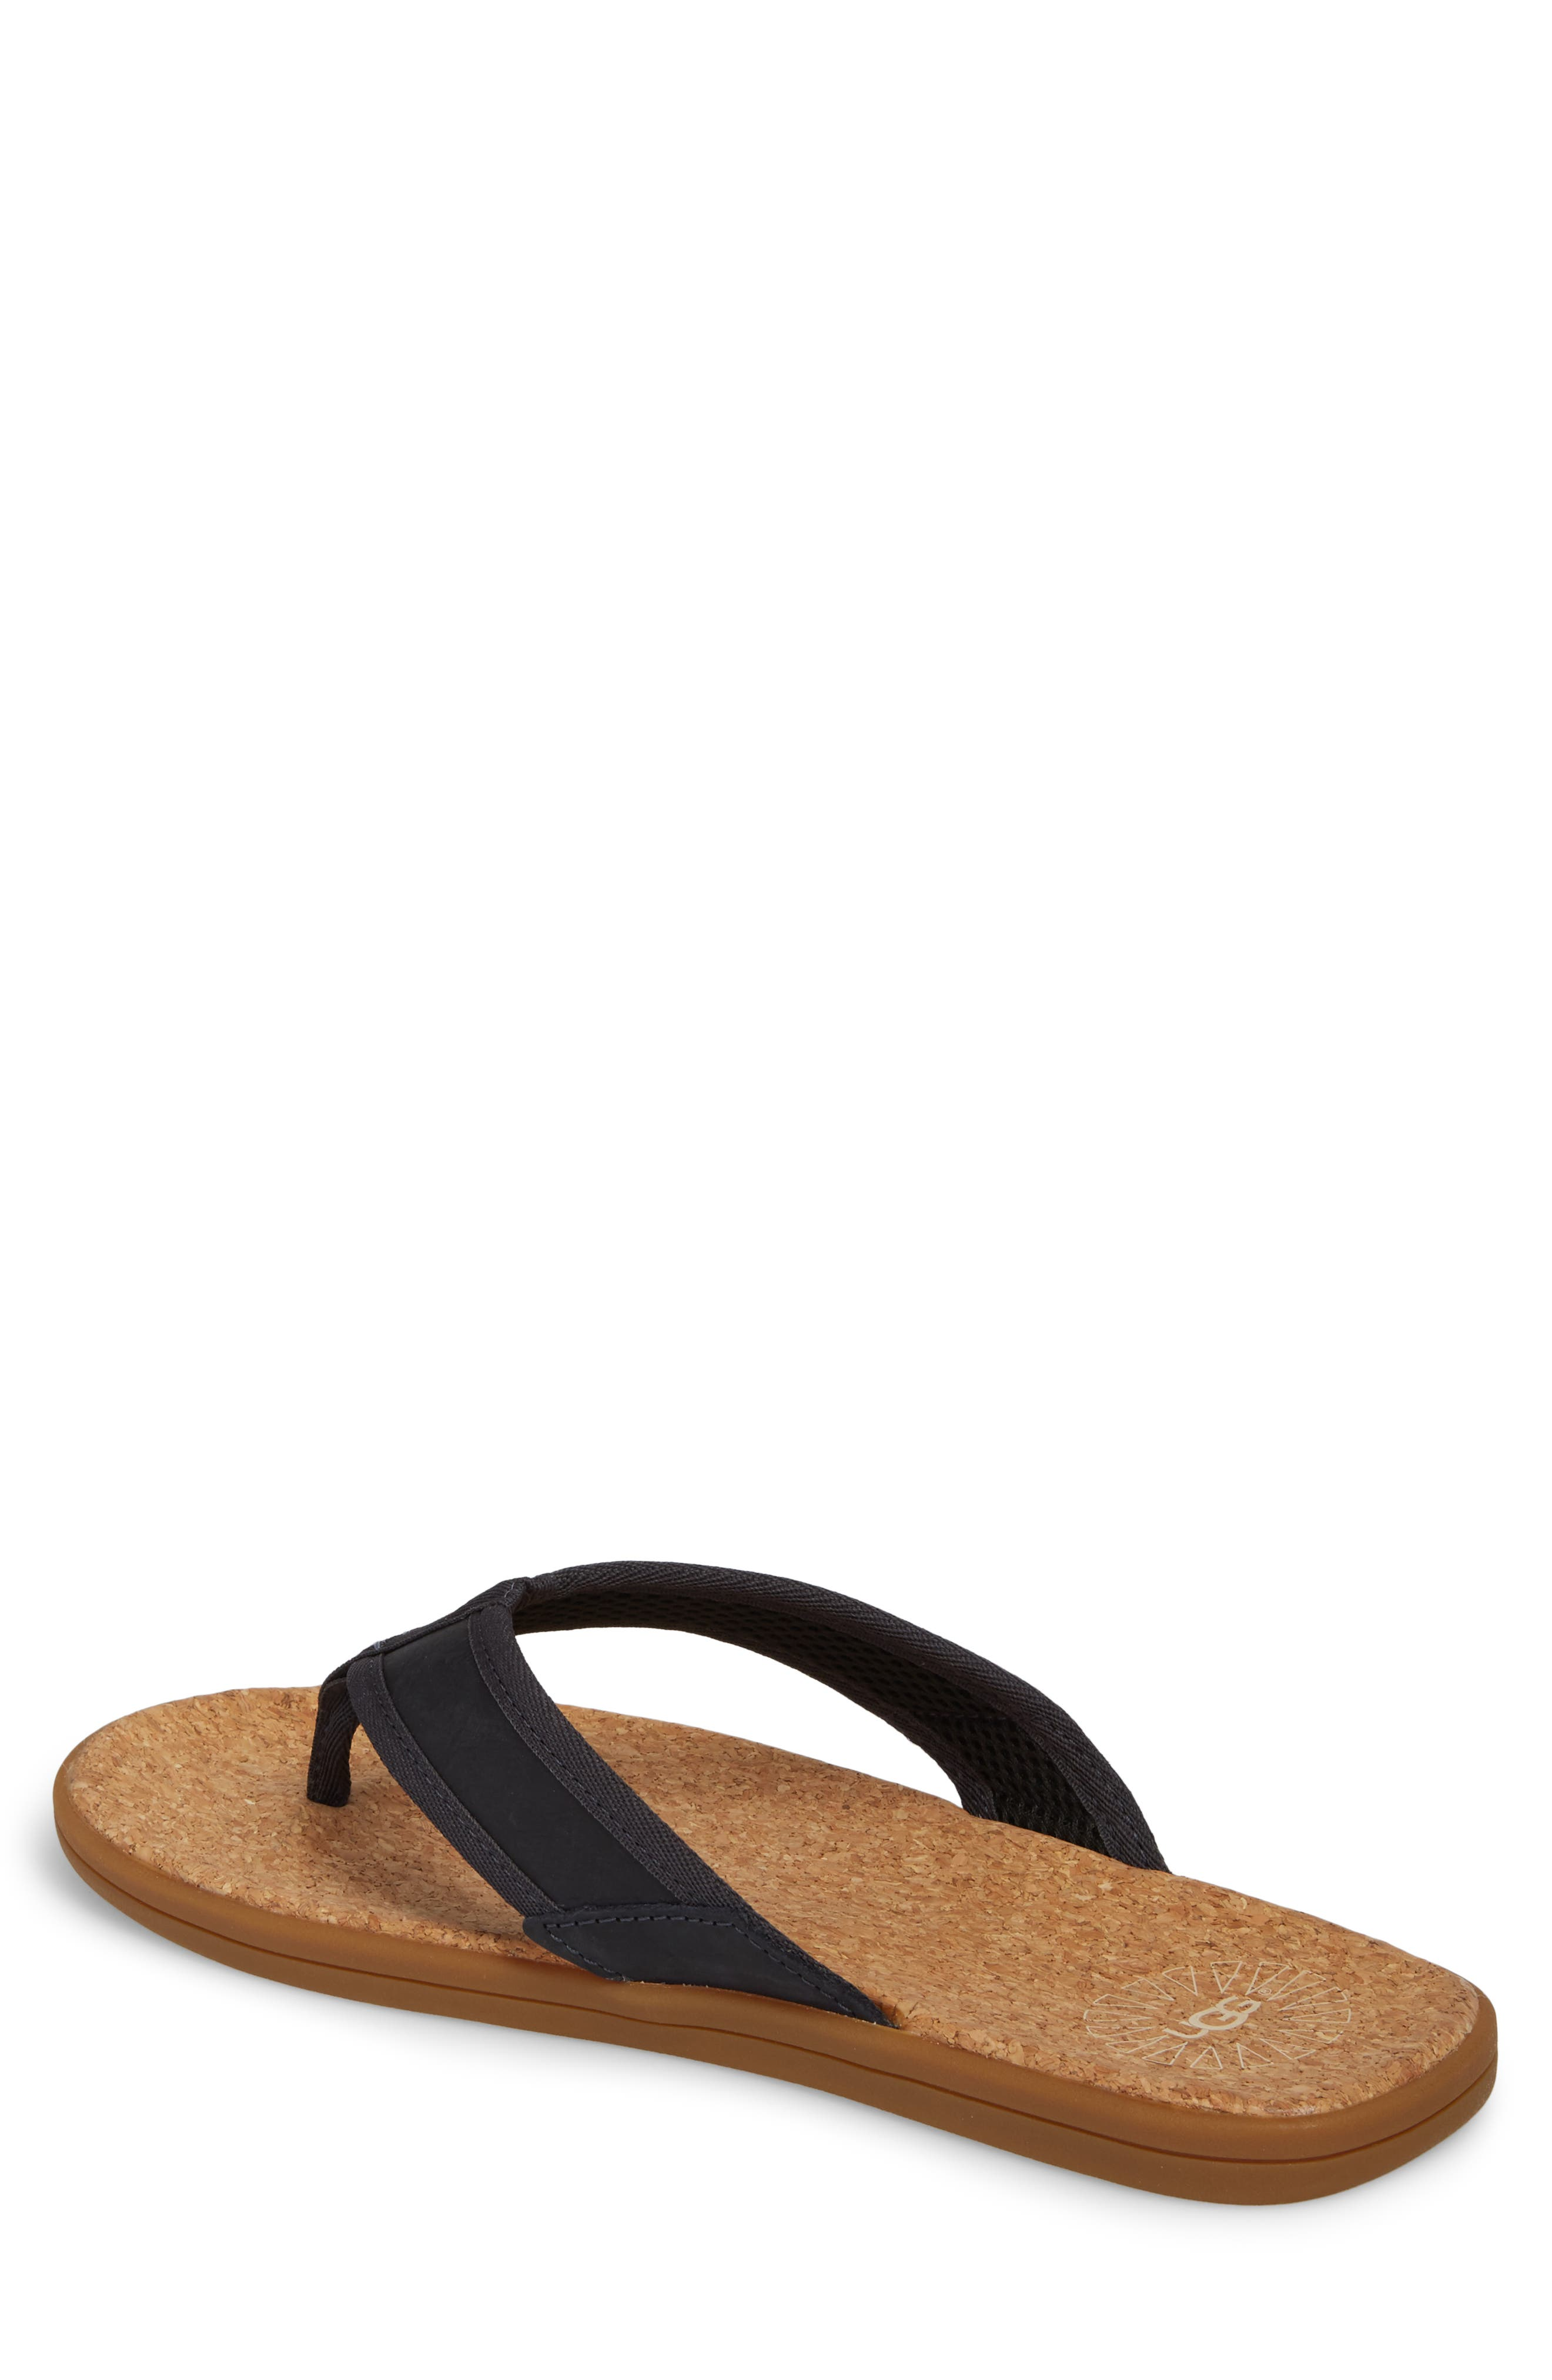 Seaside Flip Flop,                             Alternate thumbnail 2, color,                             Navy